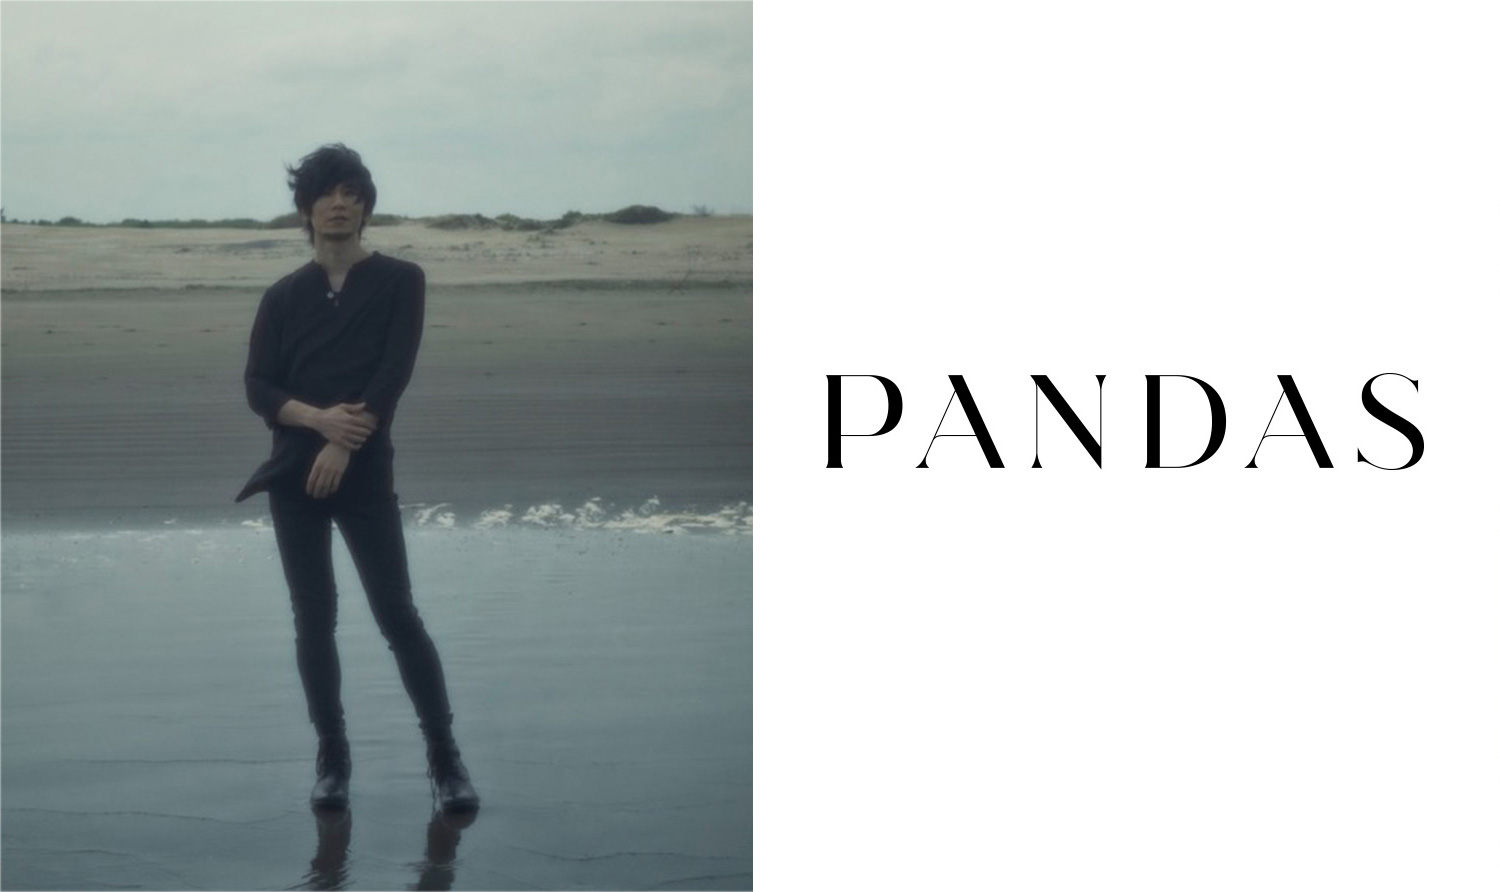 TK from 凛として時雨 /  PANDAS [中野雅之(BOOM BOOM SATELLITES) + TK(凛として時雨)]